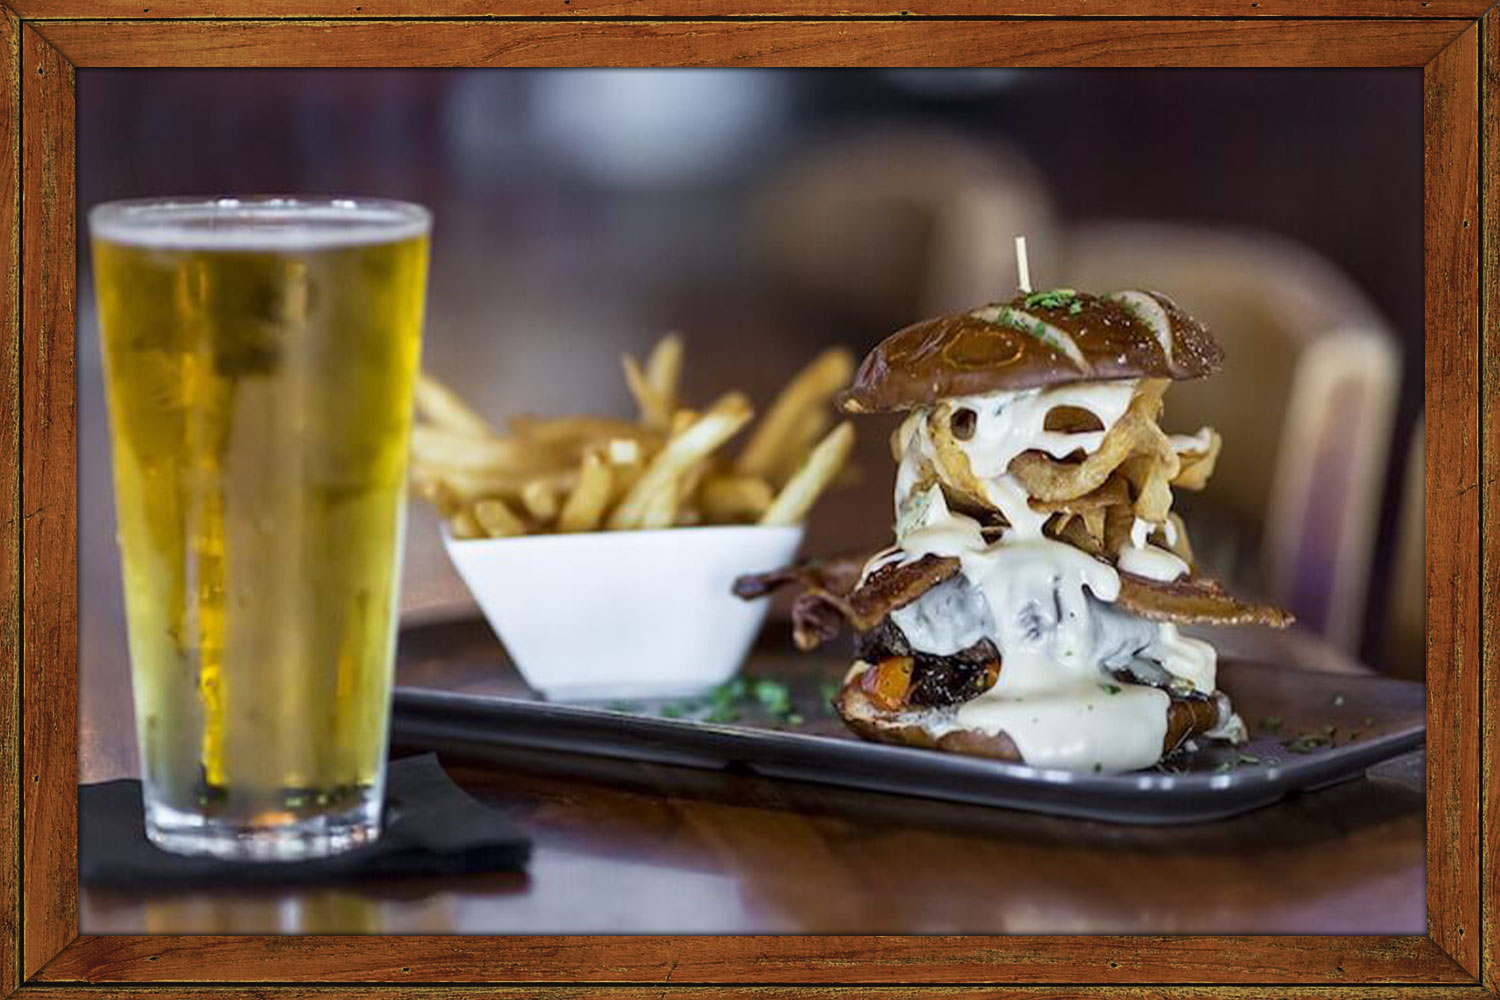 Beer, Fries, and Burger with Melting Cheese